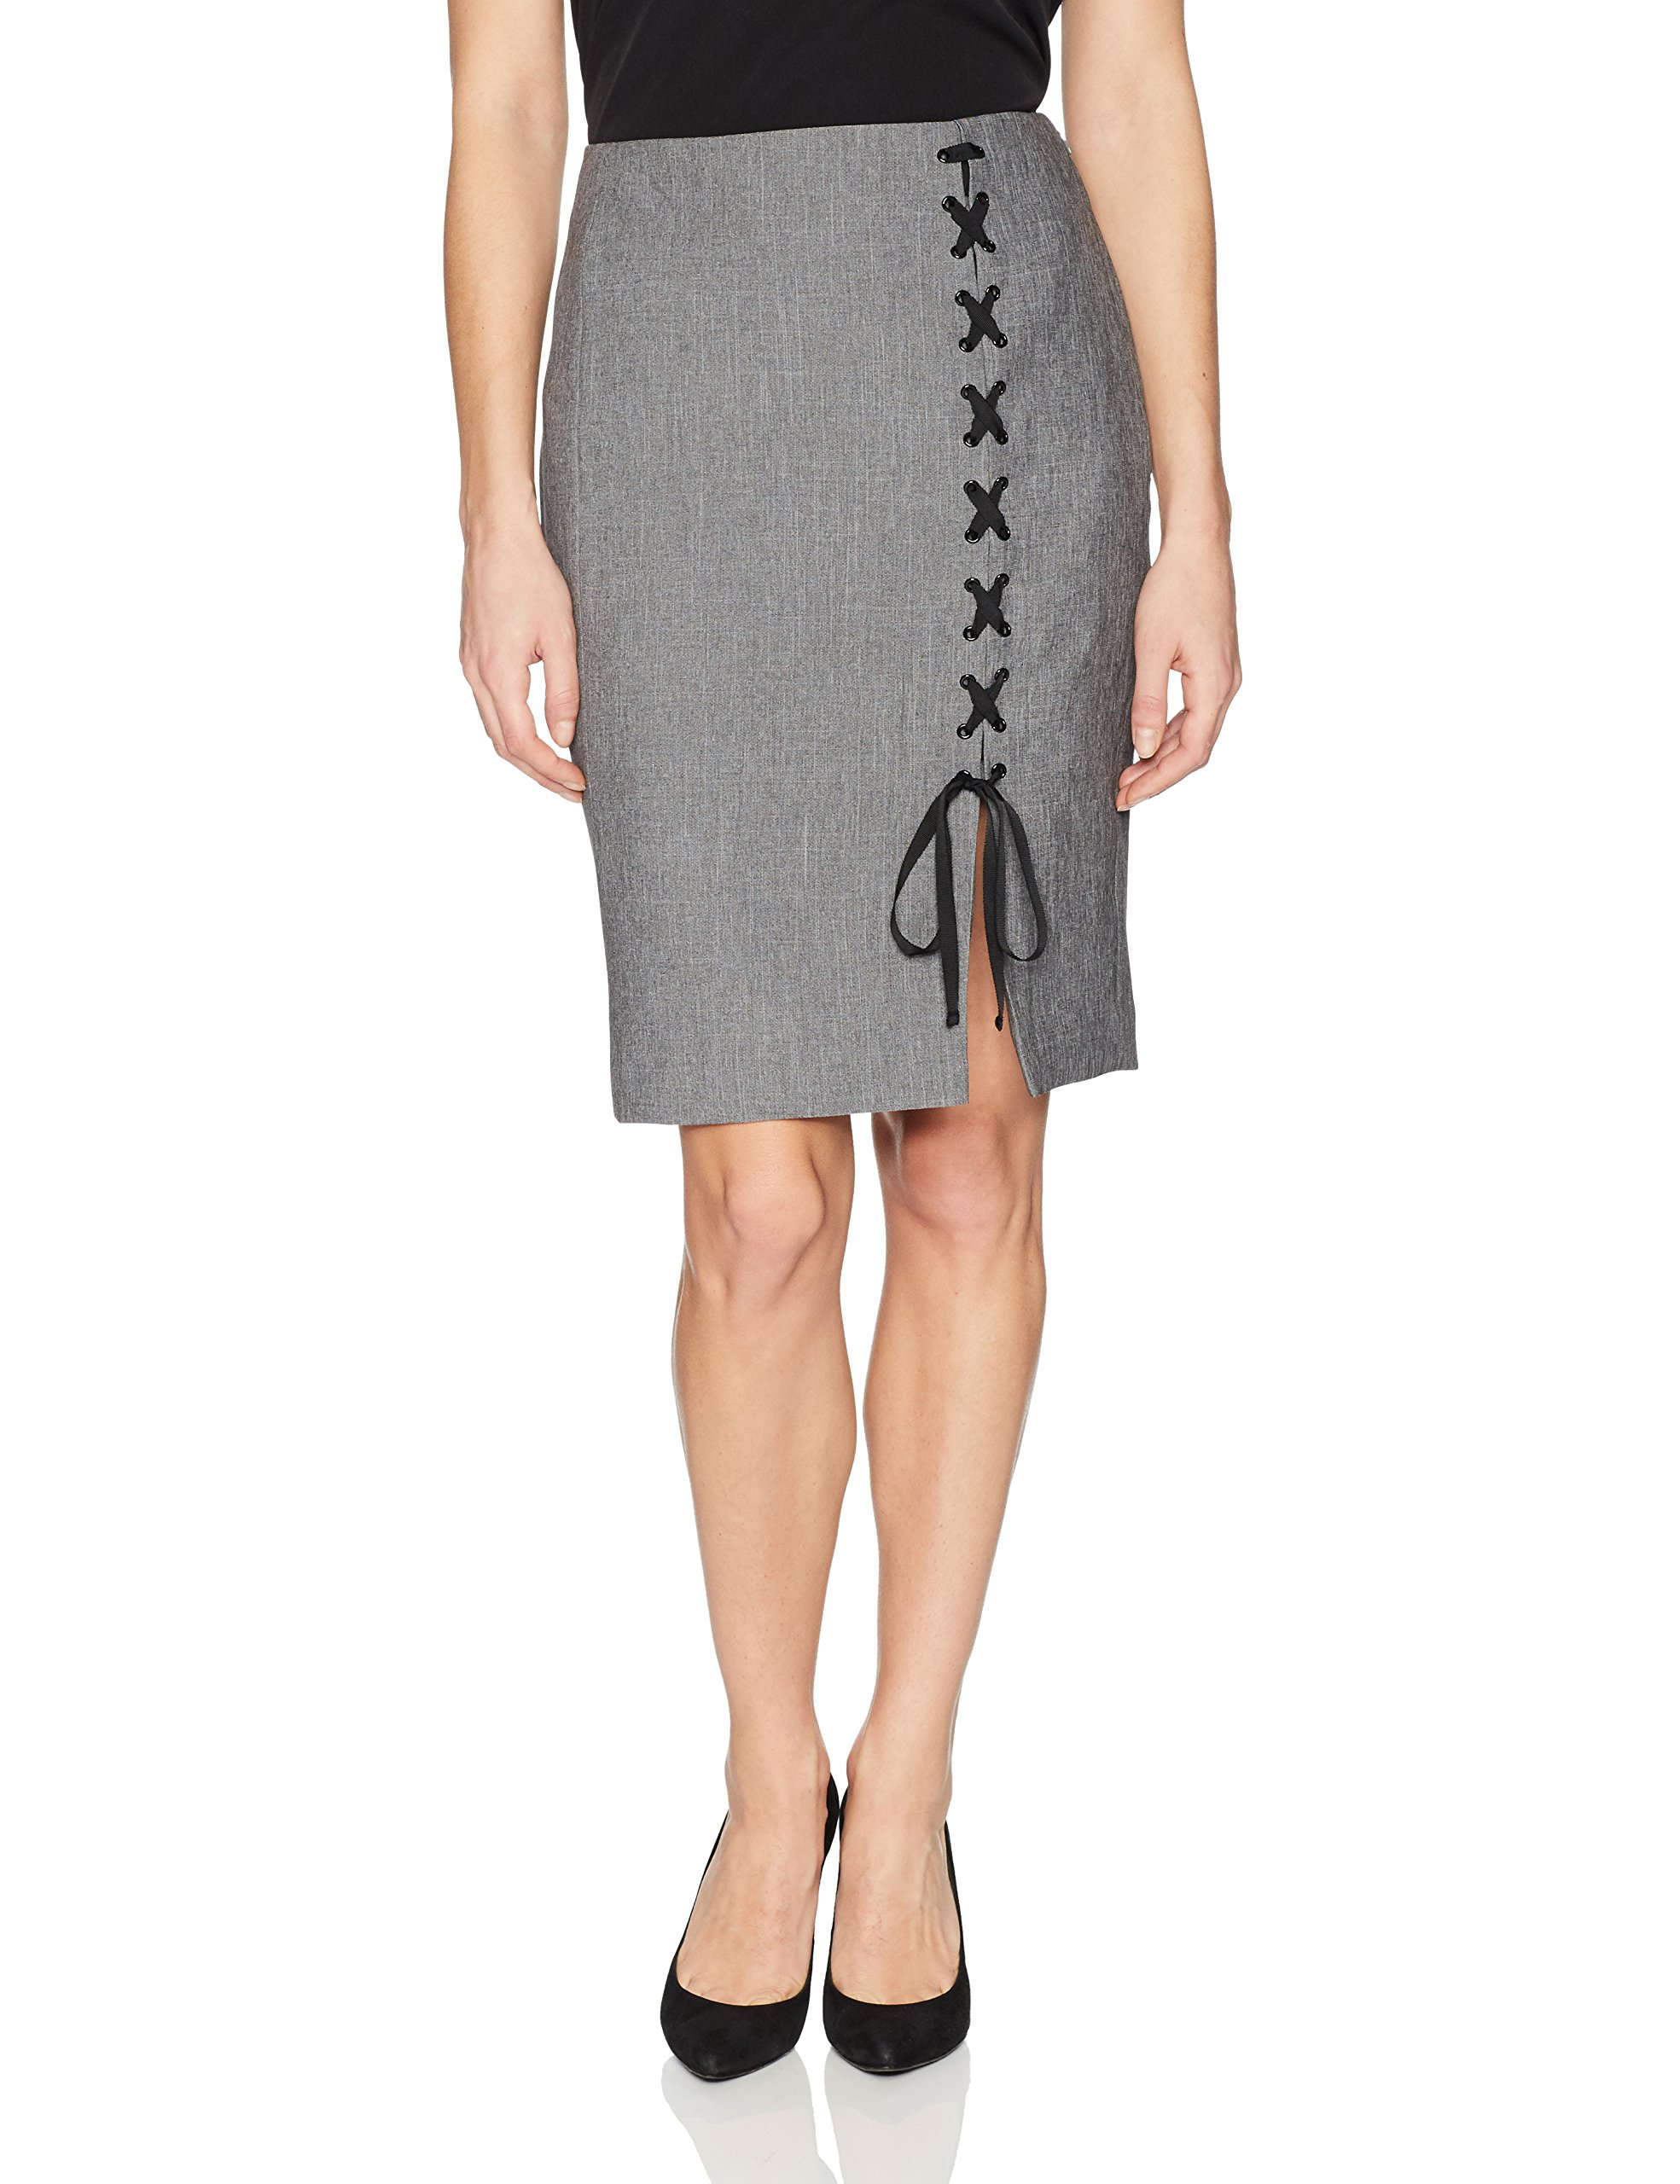 cacab48cb18eb Nine West NEW Gray Women s Size 2 Straight Pencil Lace Up Detail Skirt  79   701